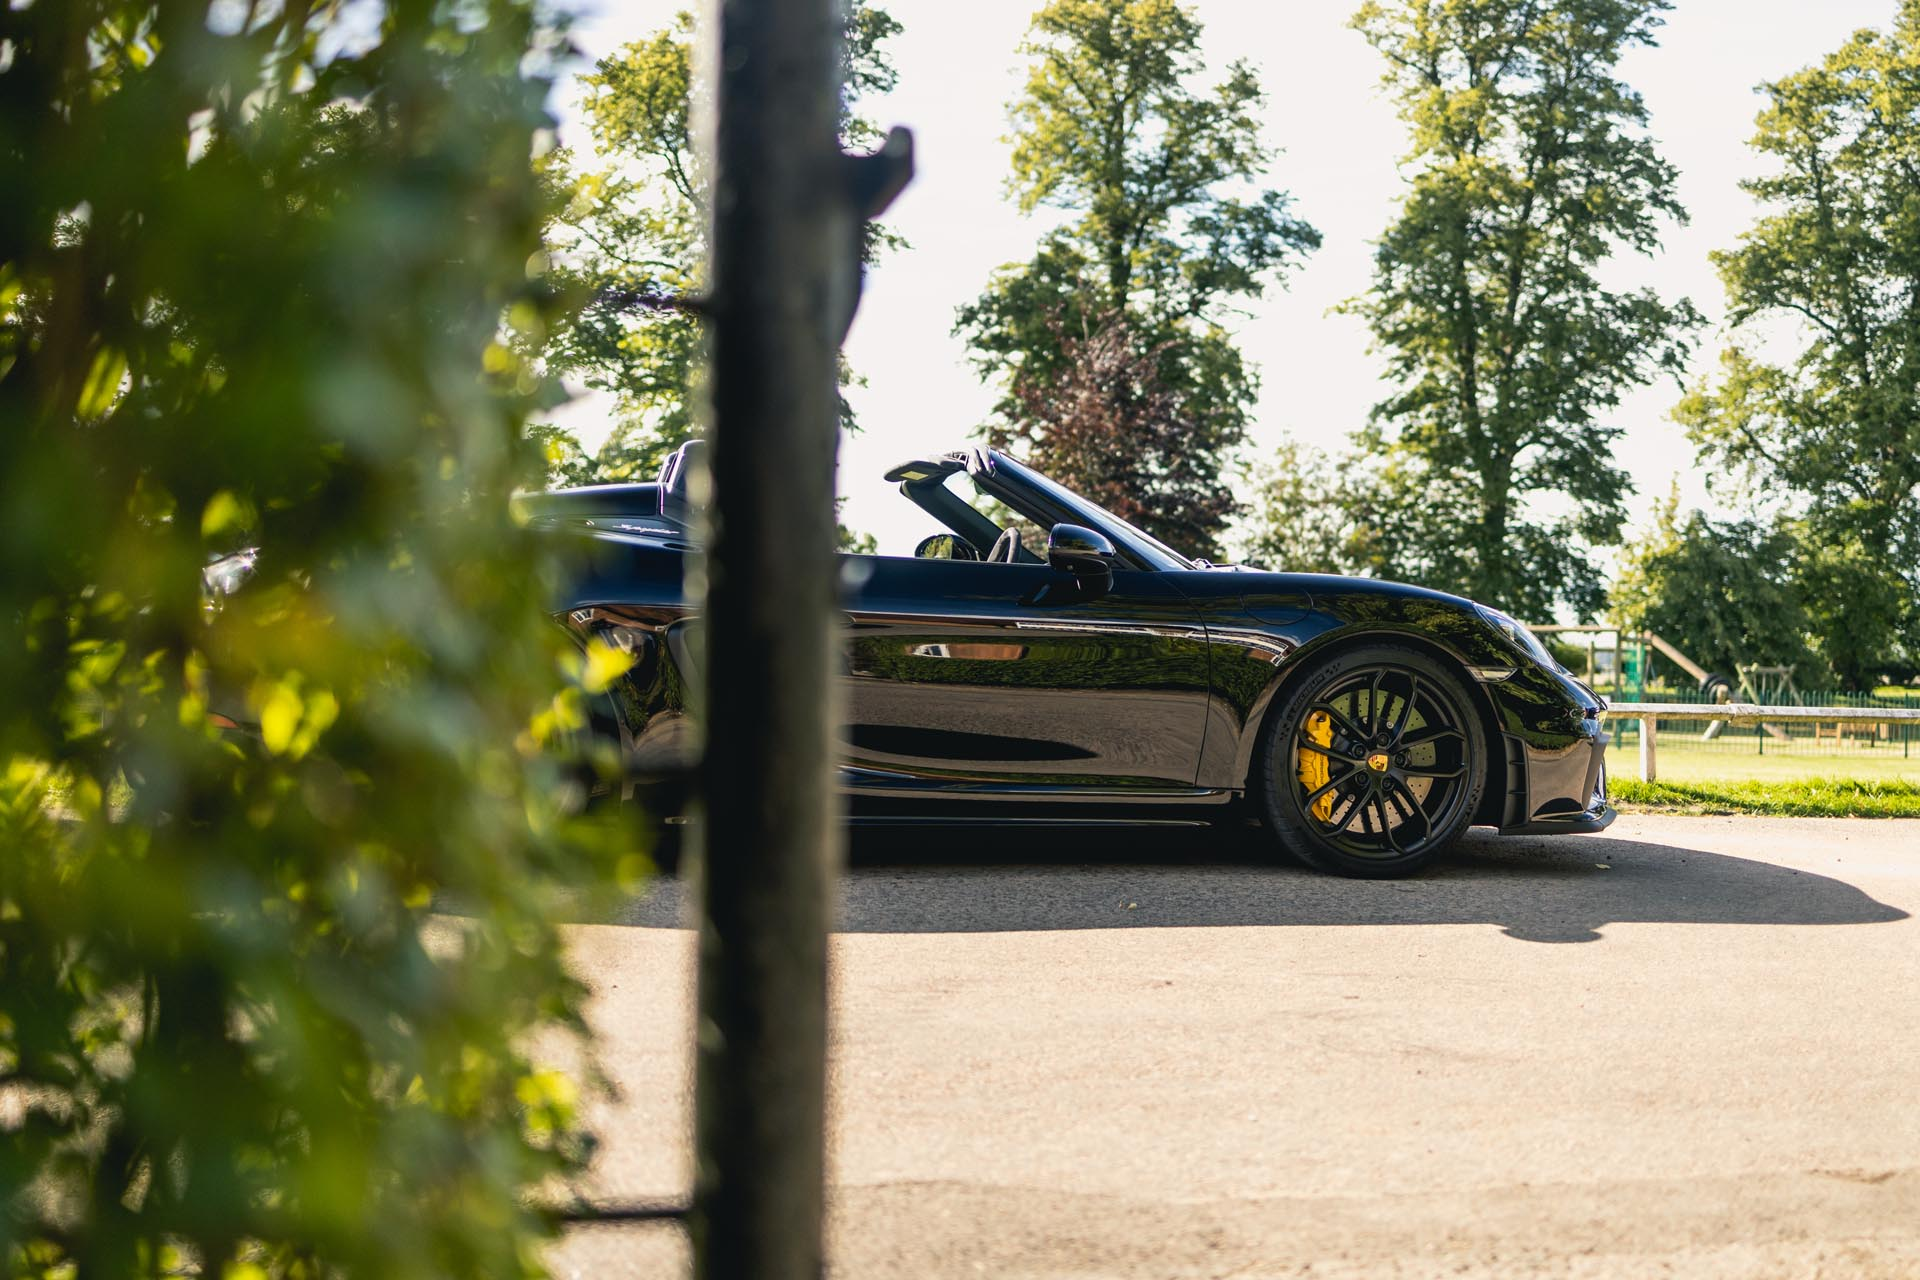 718-boxster-spyder-in-countryside